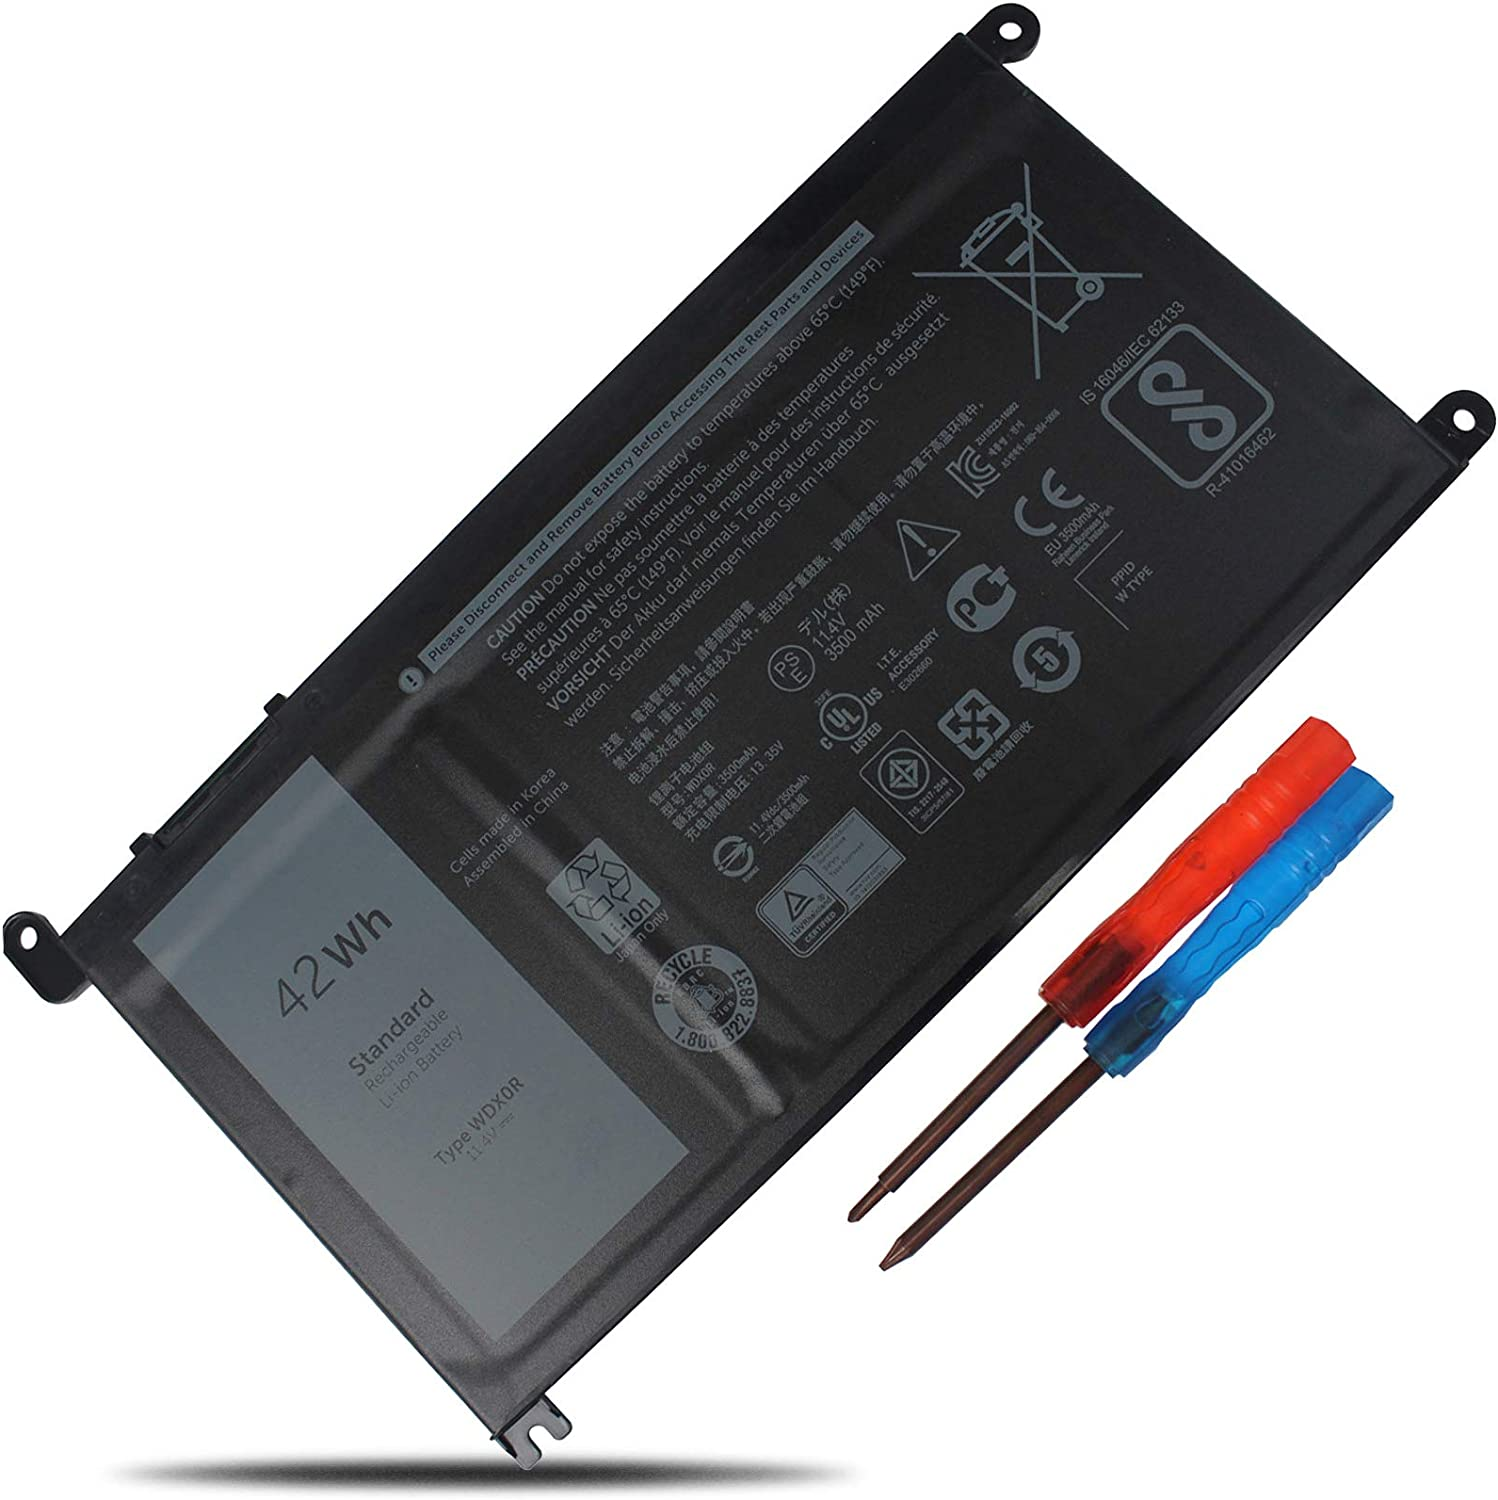 LXHY WDX0R 11.4V 42Wh 3500Mah, Laptop Battery Compatible with Dell Inspiron 15 5567 5568 5578 Inspiron 13 5368 5379 17 5767 5765, Latitude 3180 3189, 3 Cells Replacement CRH3 T2JX4 FC92N PRO-D1708TS